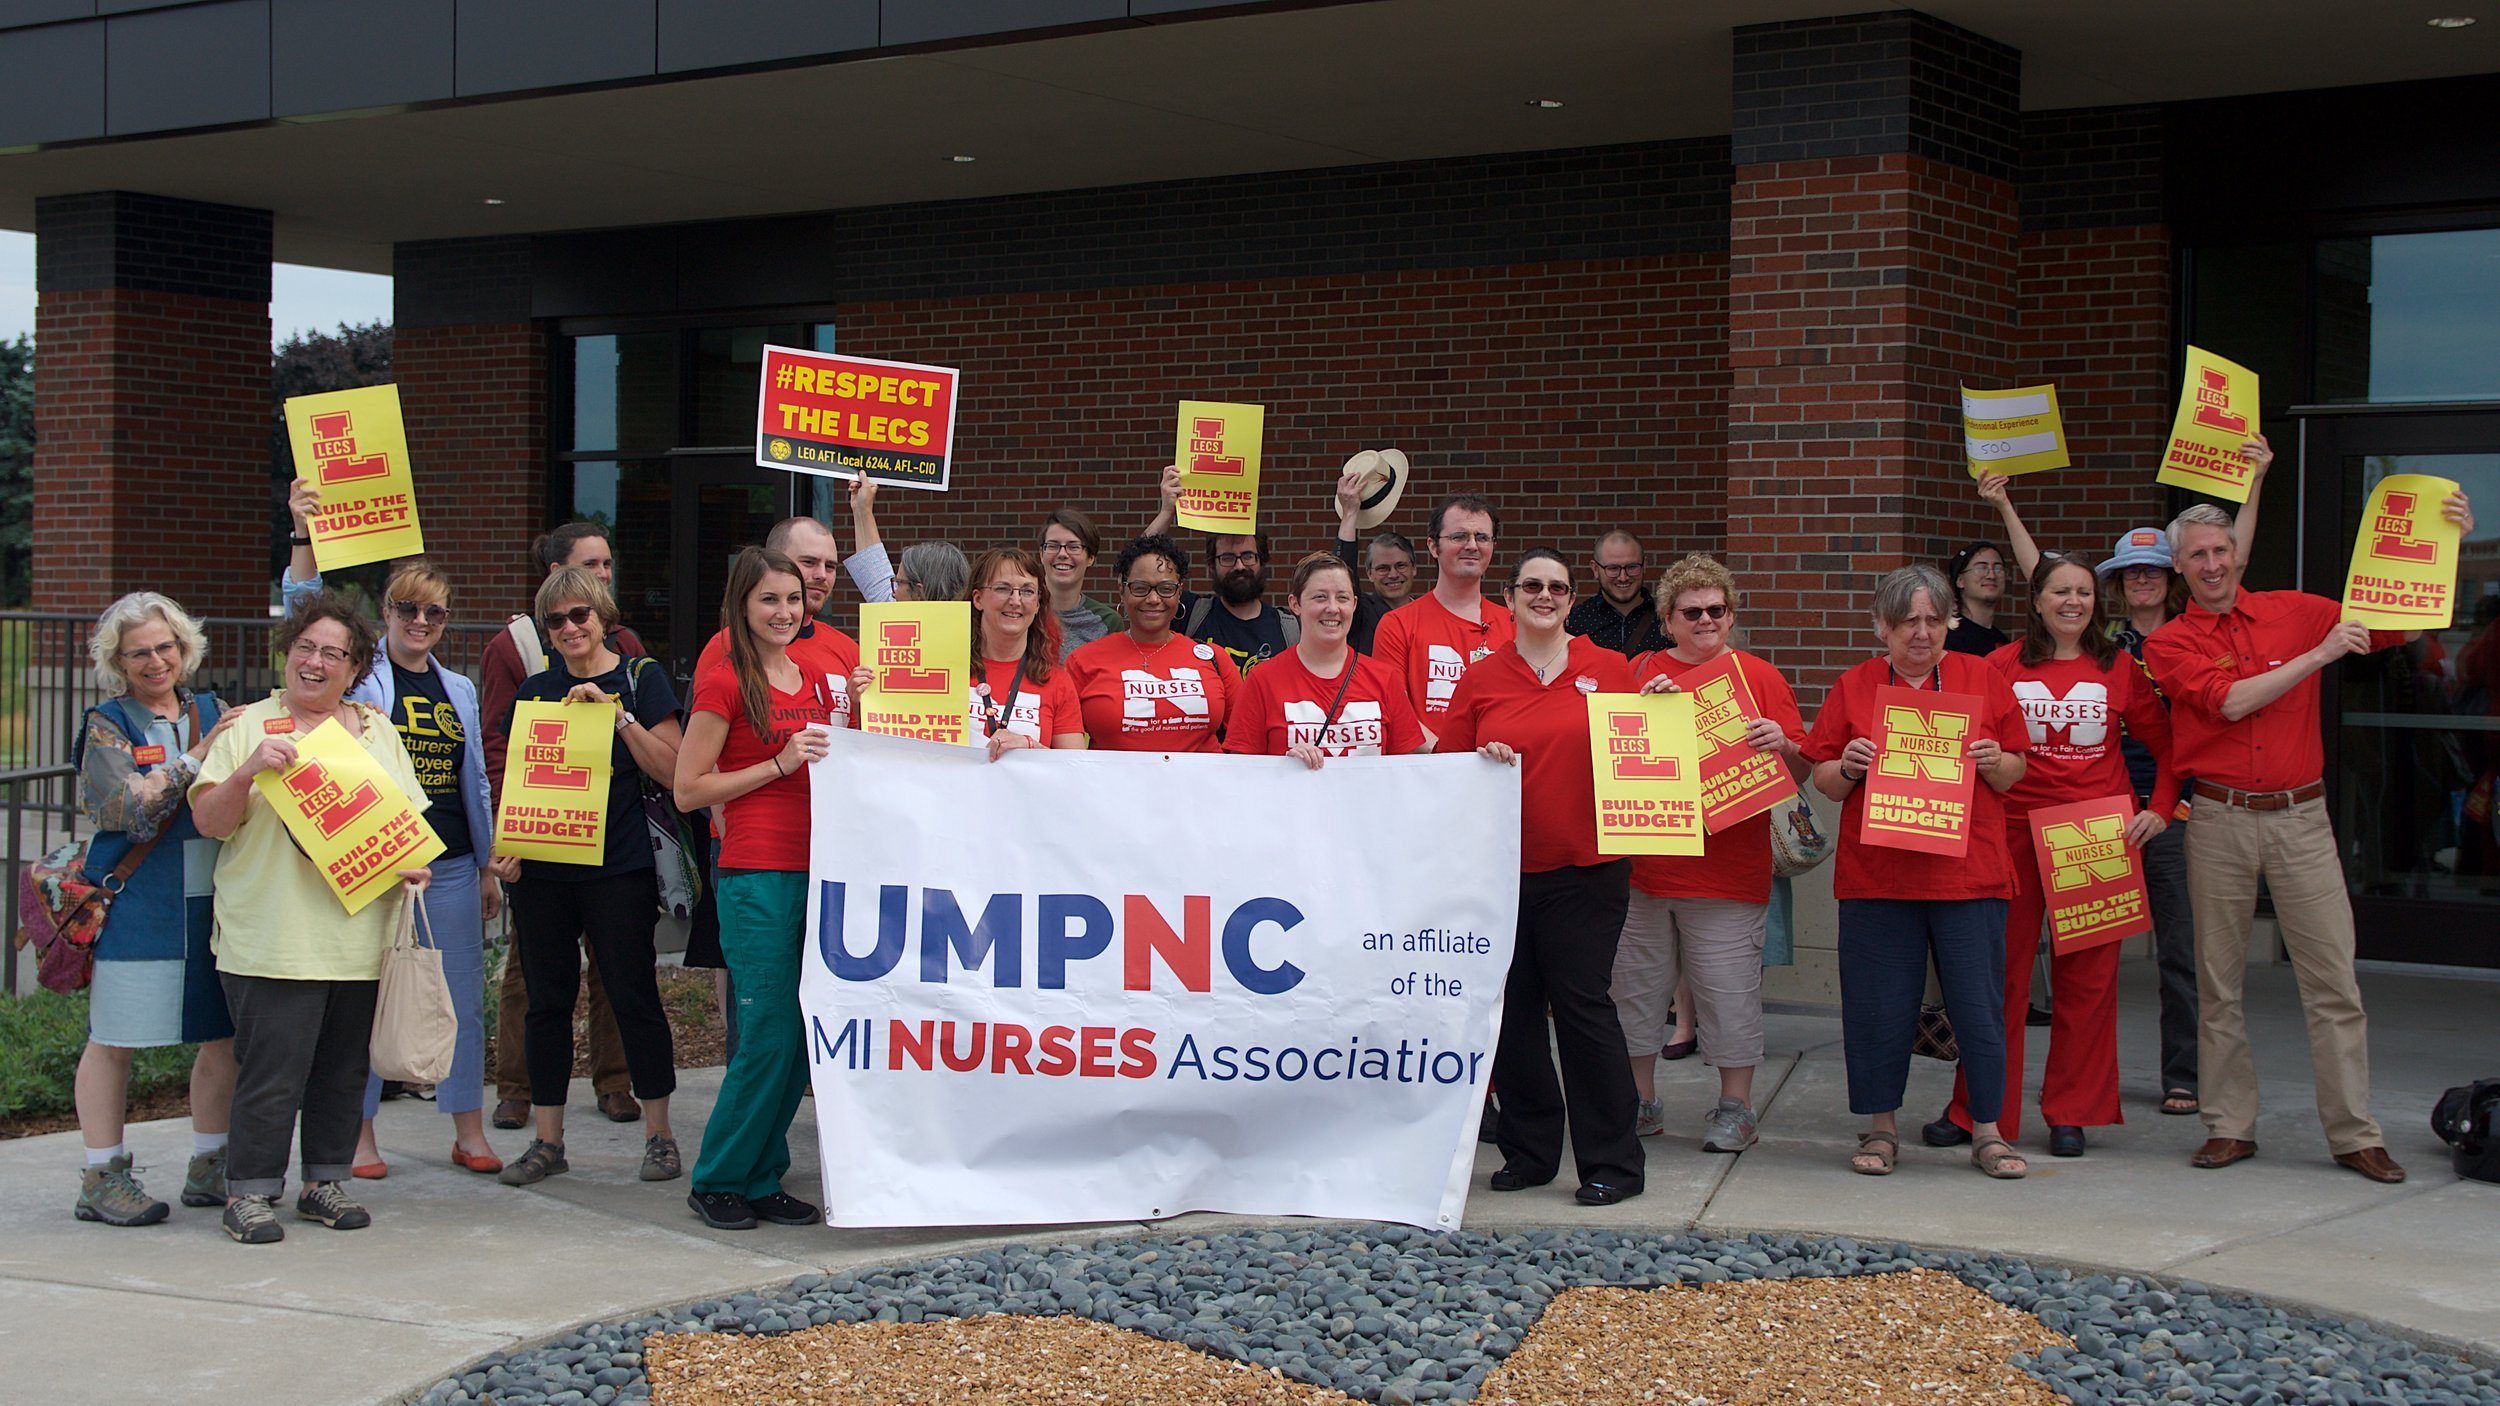 Lecturers and nurses standing together at the Regents' Meeting in June 2018.